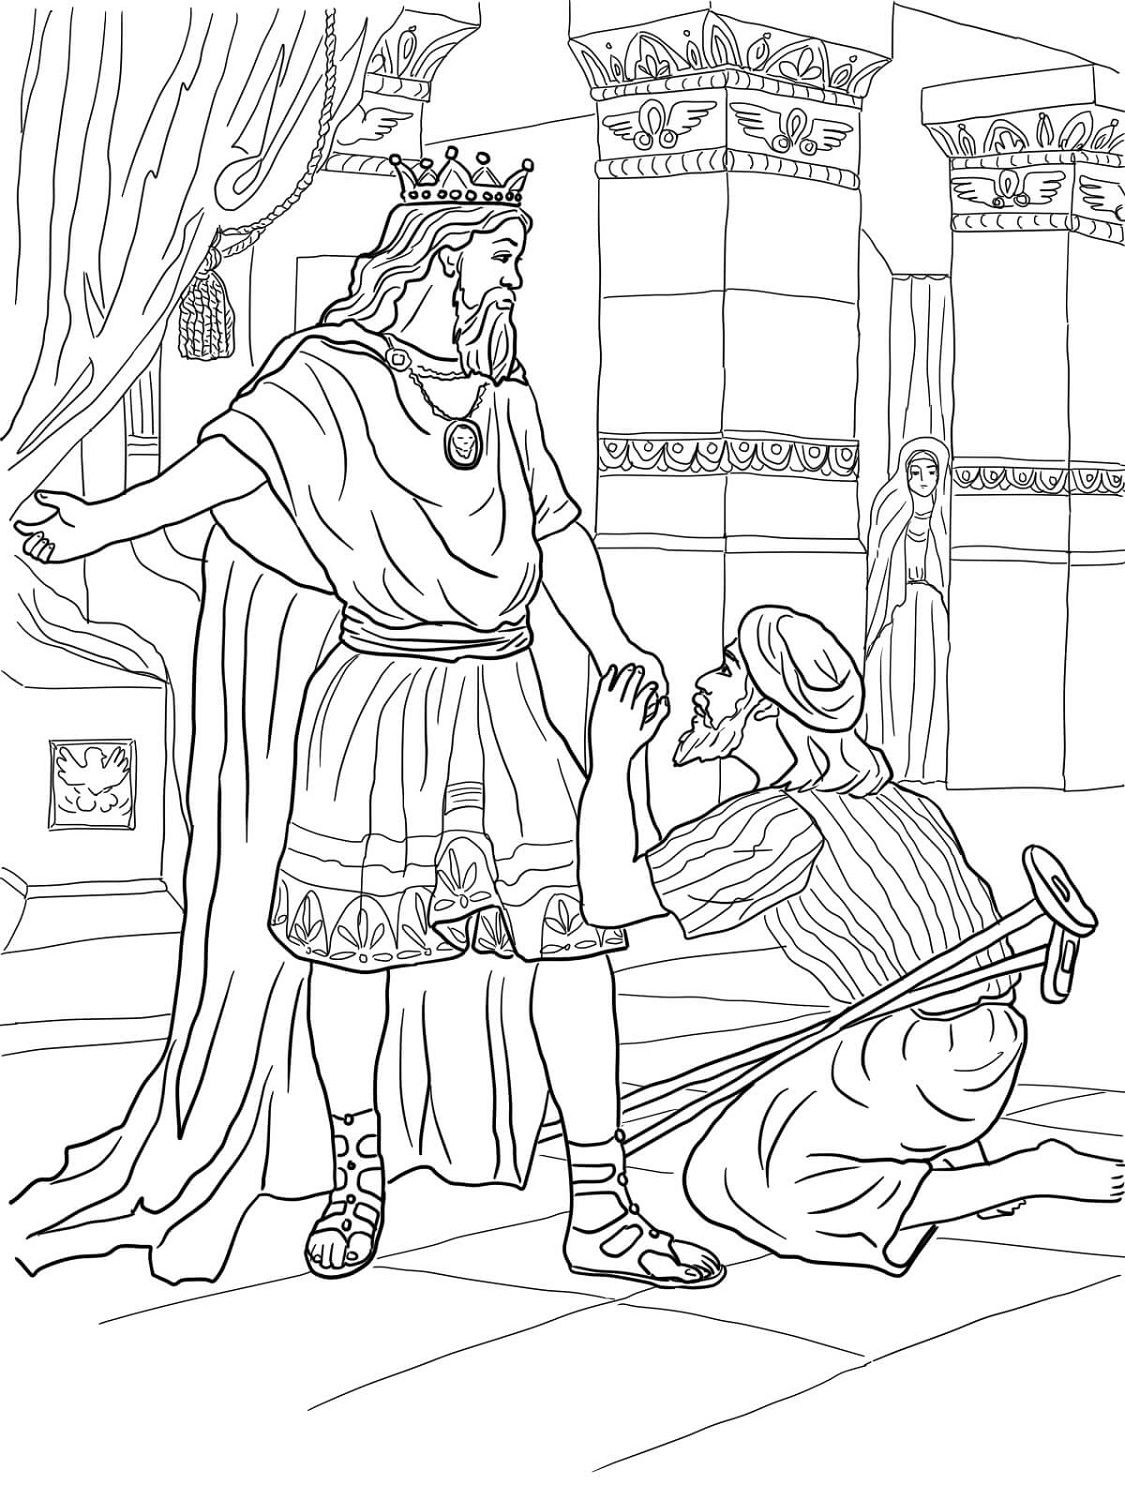 King David Coloring Pages K5 Worksheets Sunday School Coloring Pages Bible Coloring Pages Happy Birthday Coloring Pages